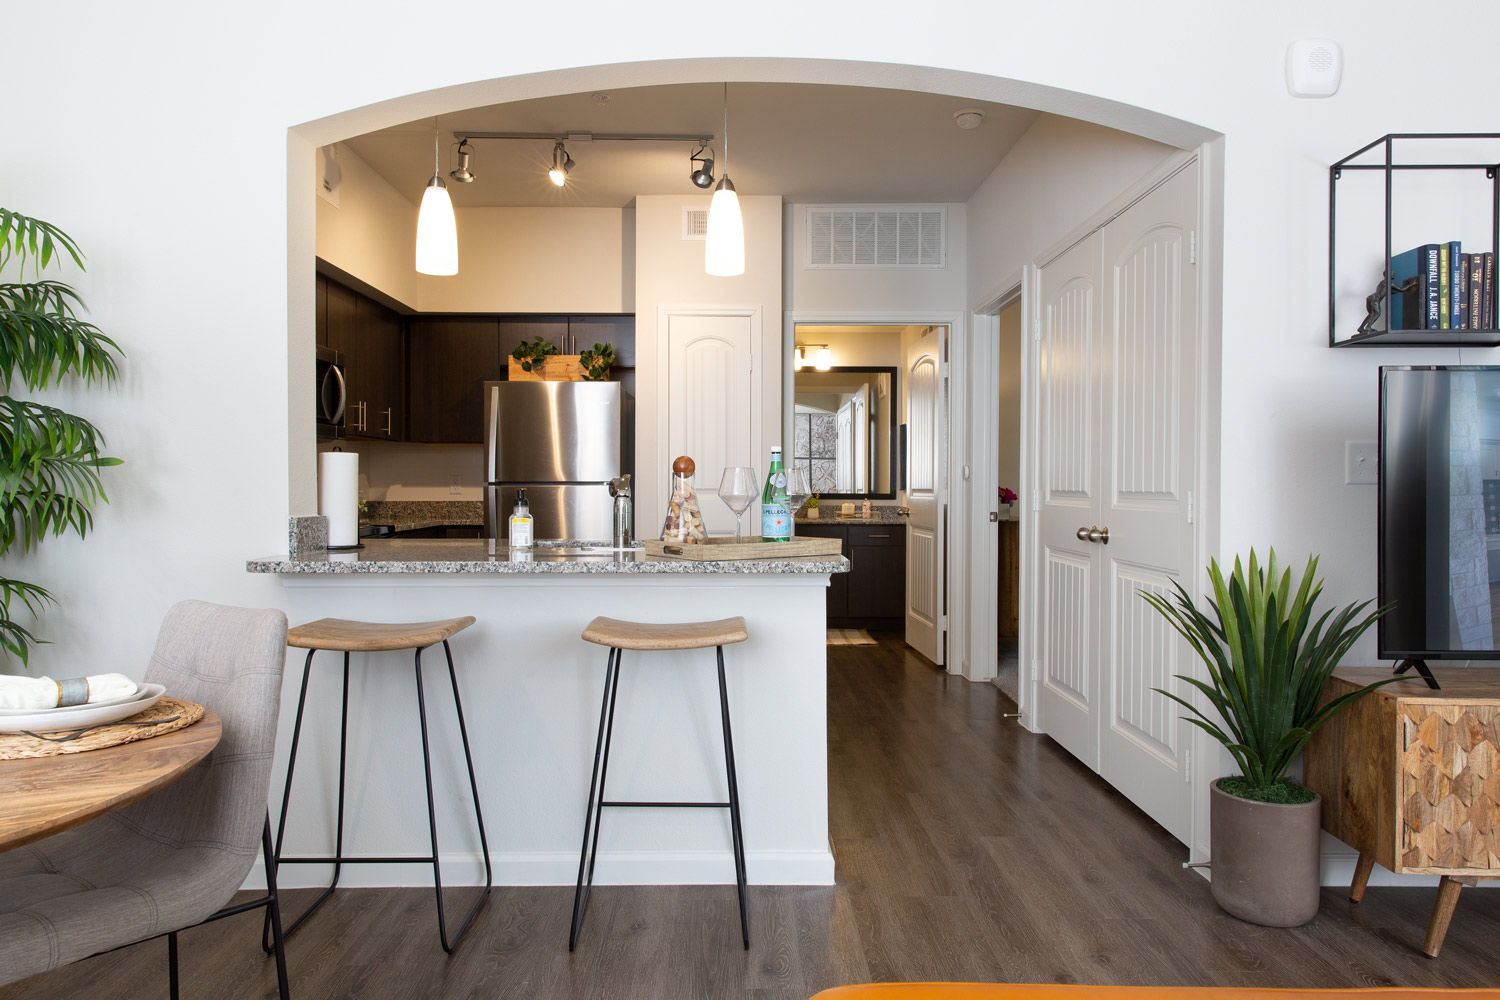 Modern Kitchen at Oxford at Santa Clara Apartments in Pflugerville, Texas